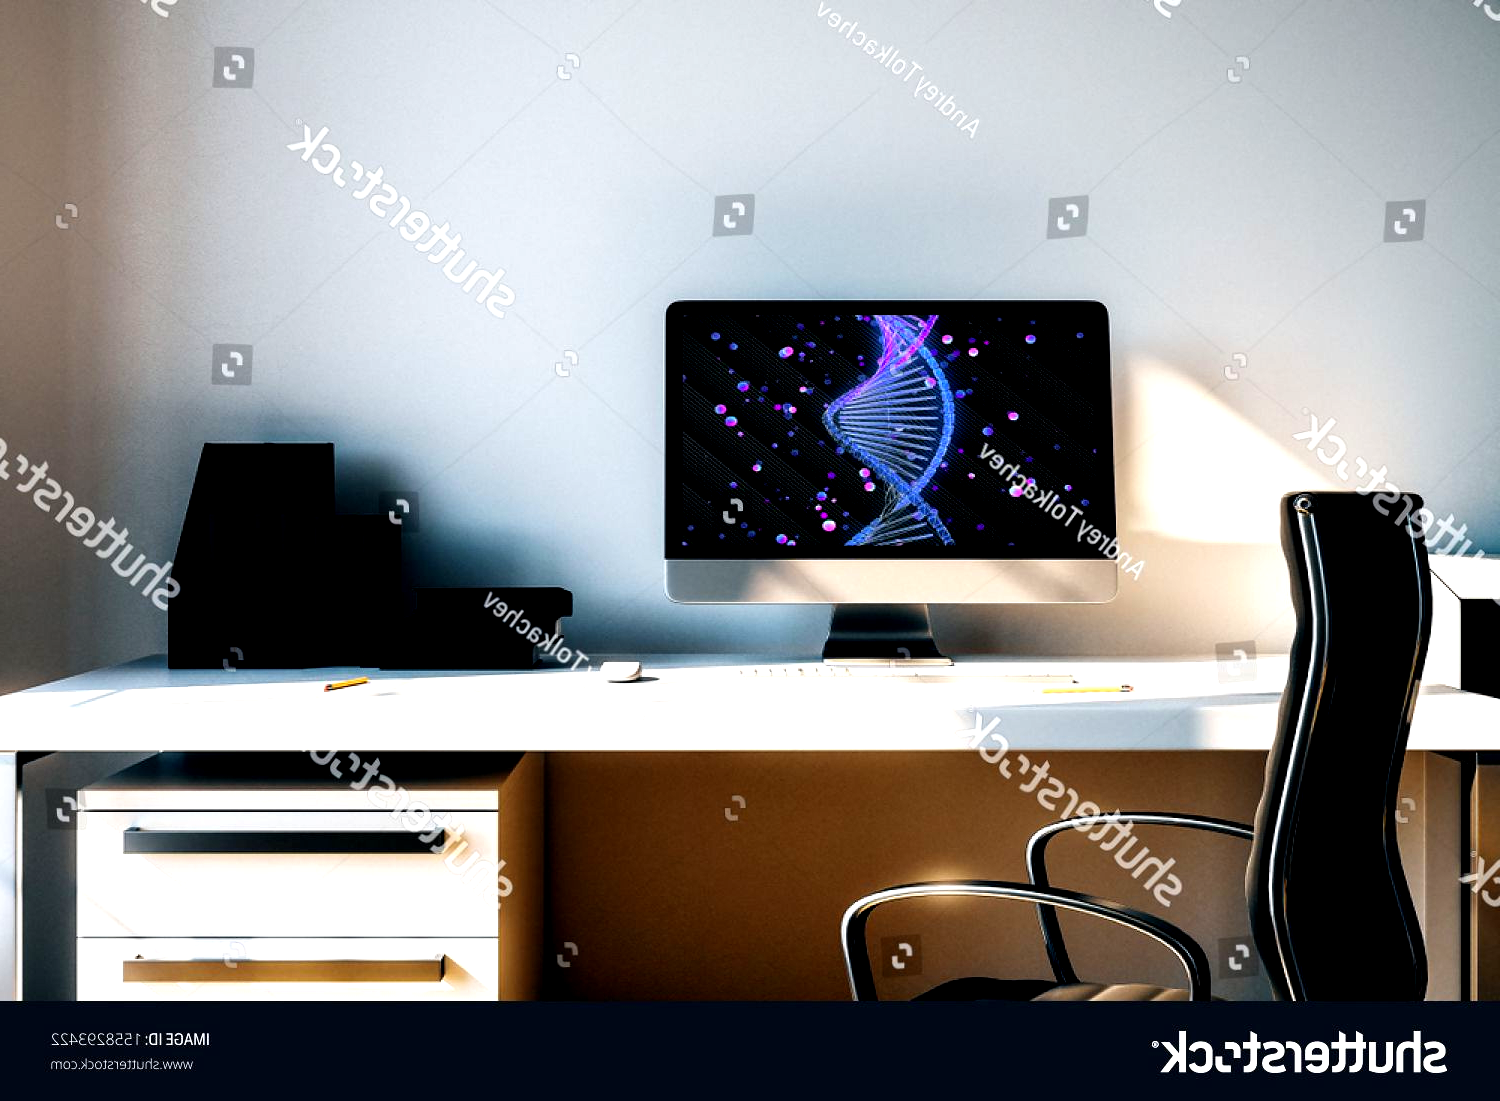 Desktop Interior With Dna Drawing On Computer Screen Table And Chair Concept Of Education 3d Rendering Ad Spon In 2020 Computer Drawing Dna Drawing Interior